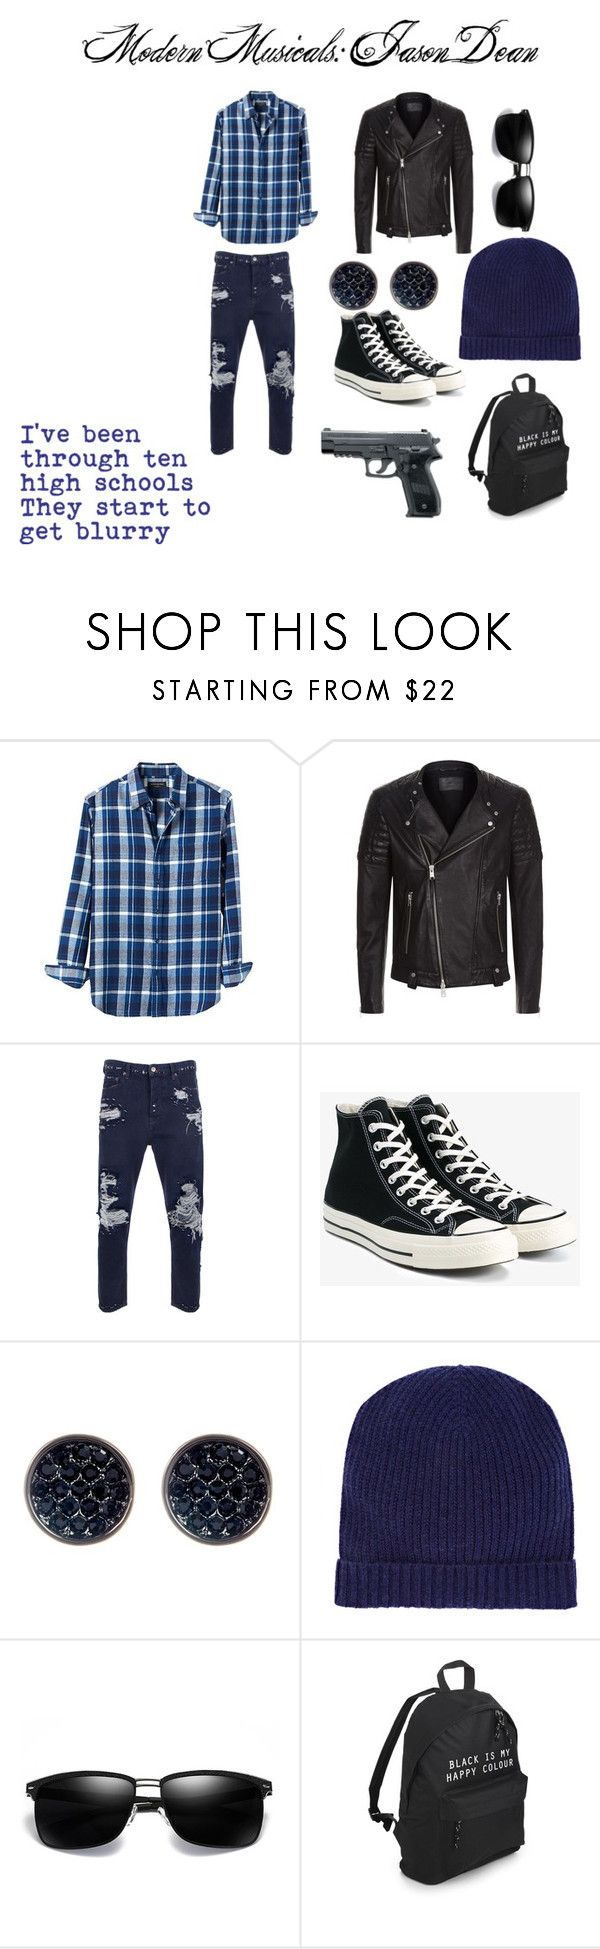 """""""Modern Musicals: JD"""" by sweetumkitty on Polyvore featuring Banana Republic, AllSaints, Golden Goose, Converse, Ariella Collection, Barneys New York, modern, men's fashion, menswear and Heathers"""